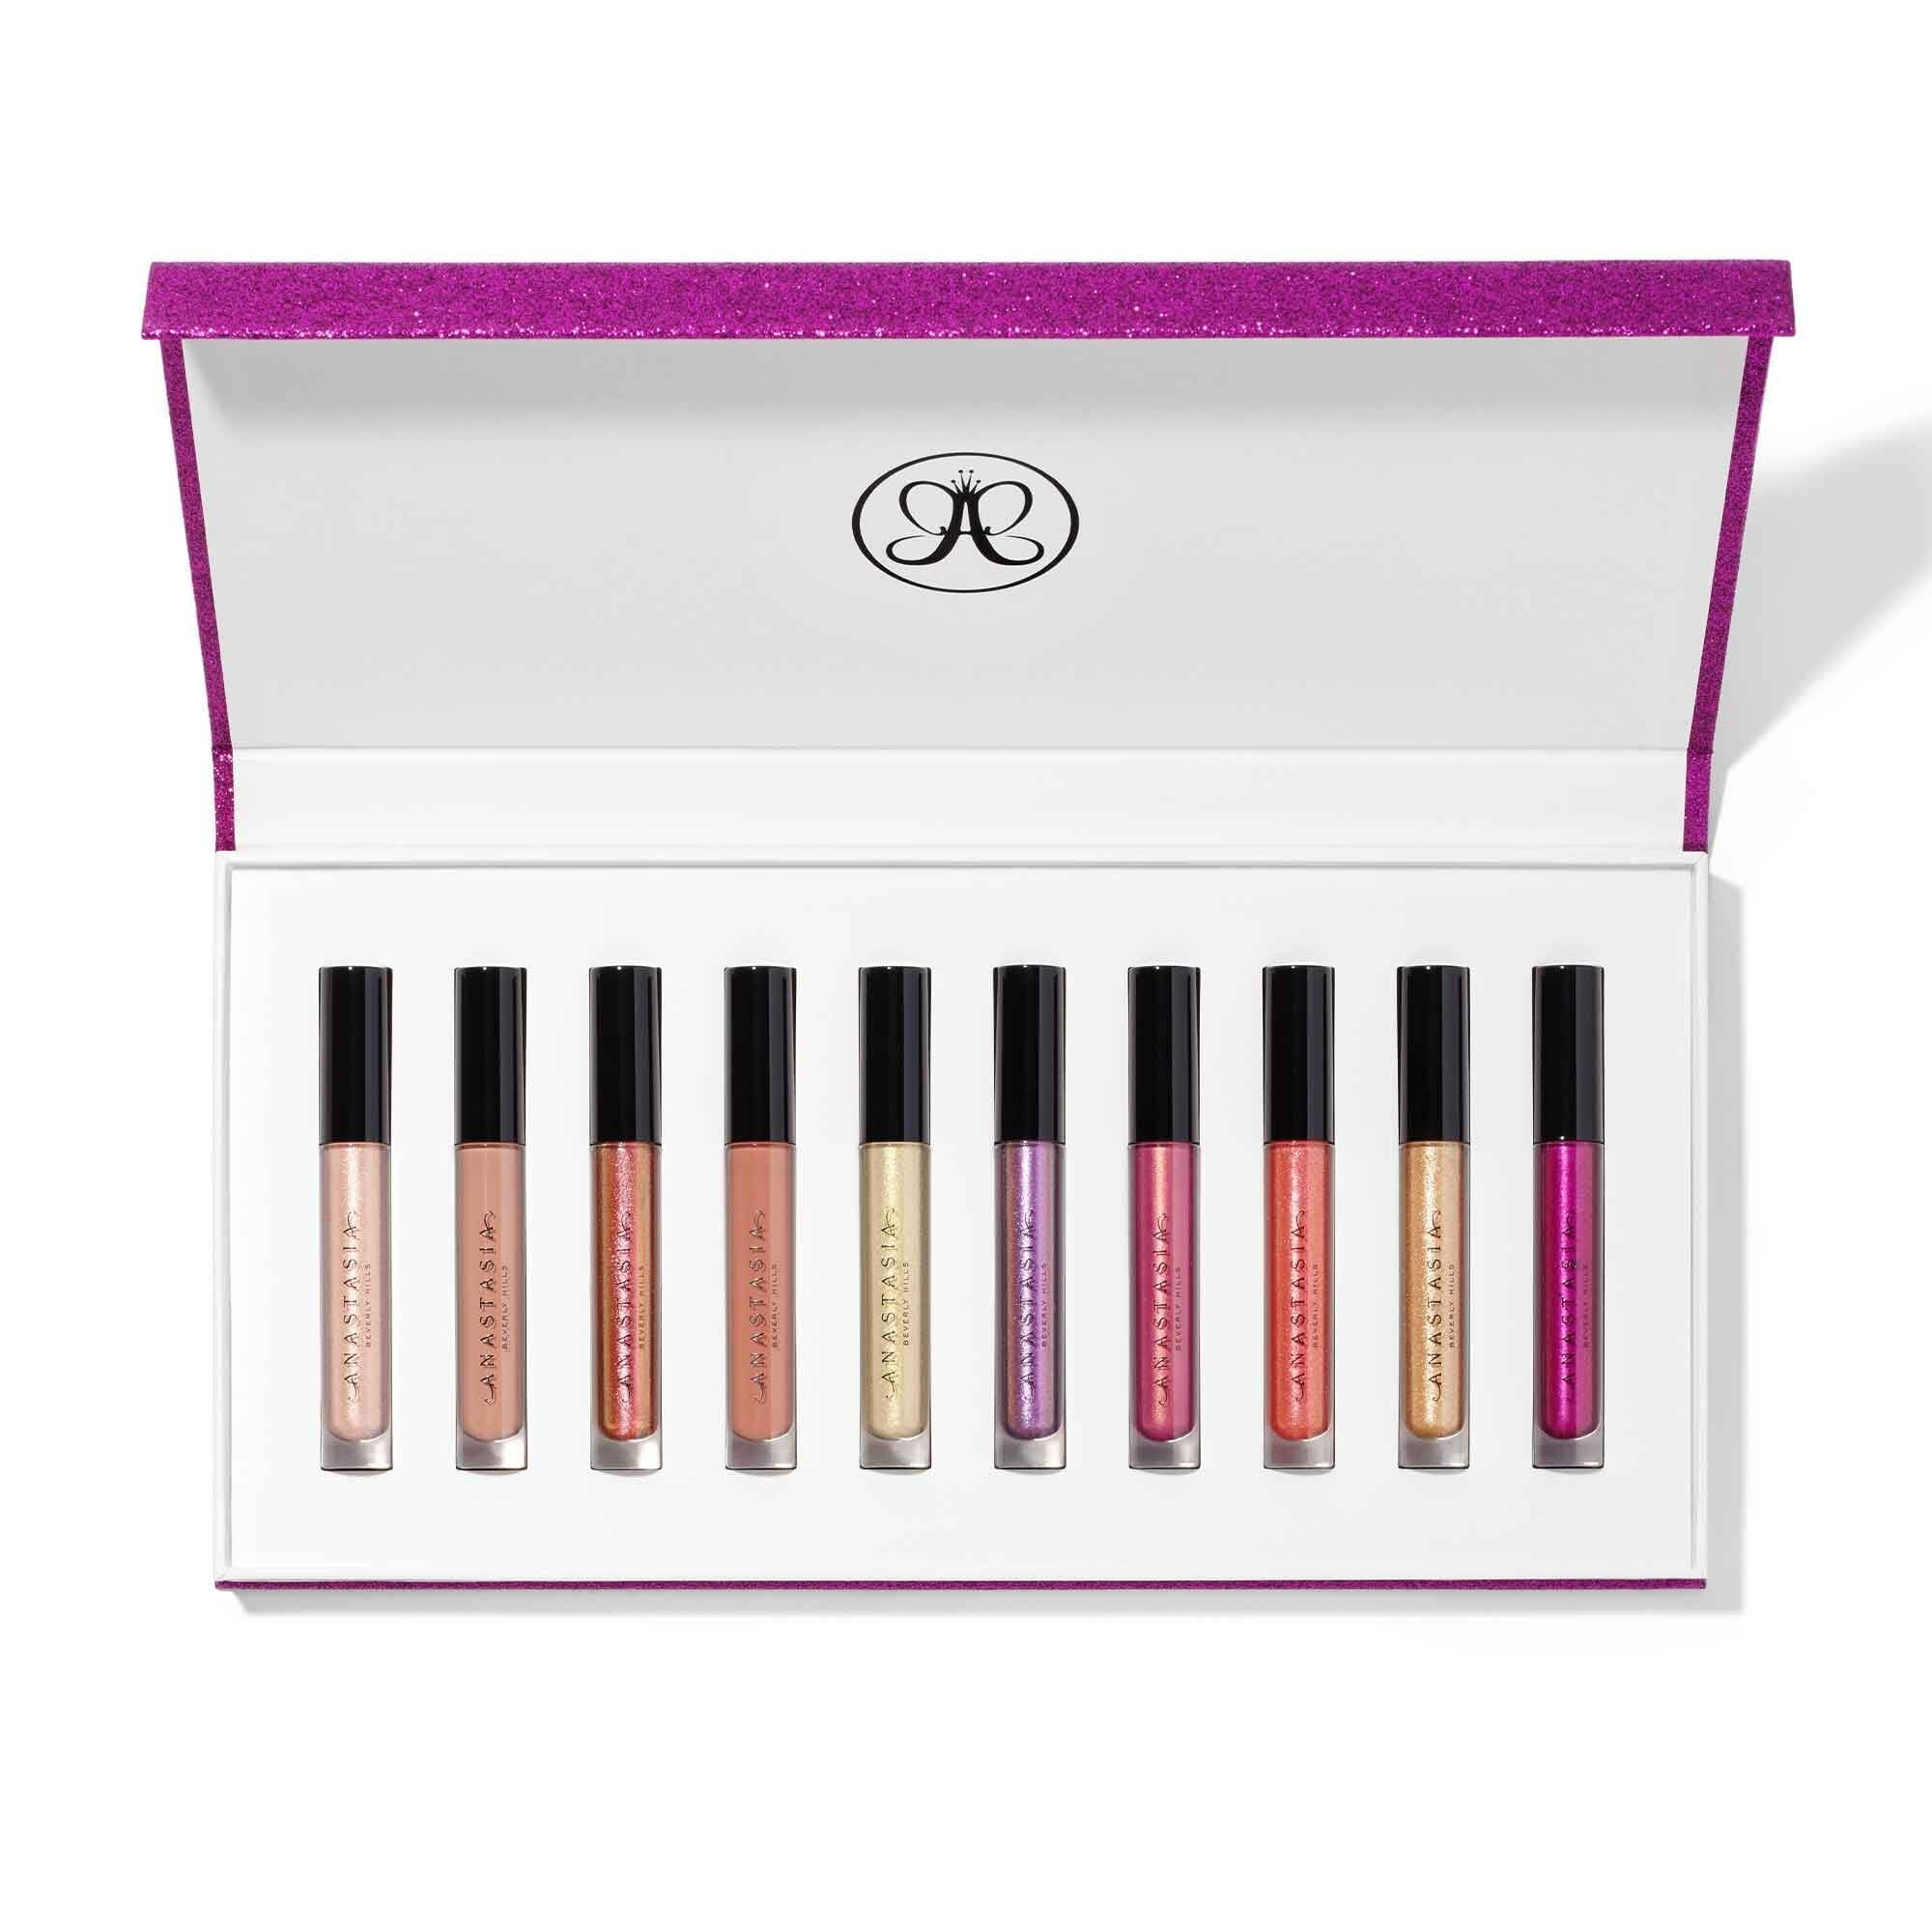 Anastasia Beverly Hills Holiday Lip Gloss Set